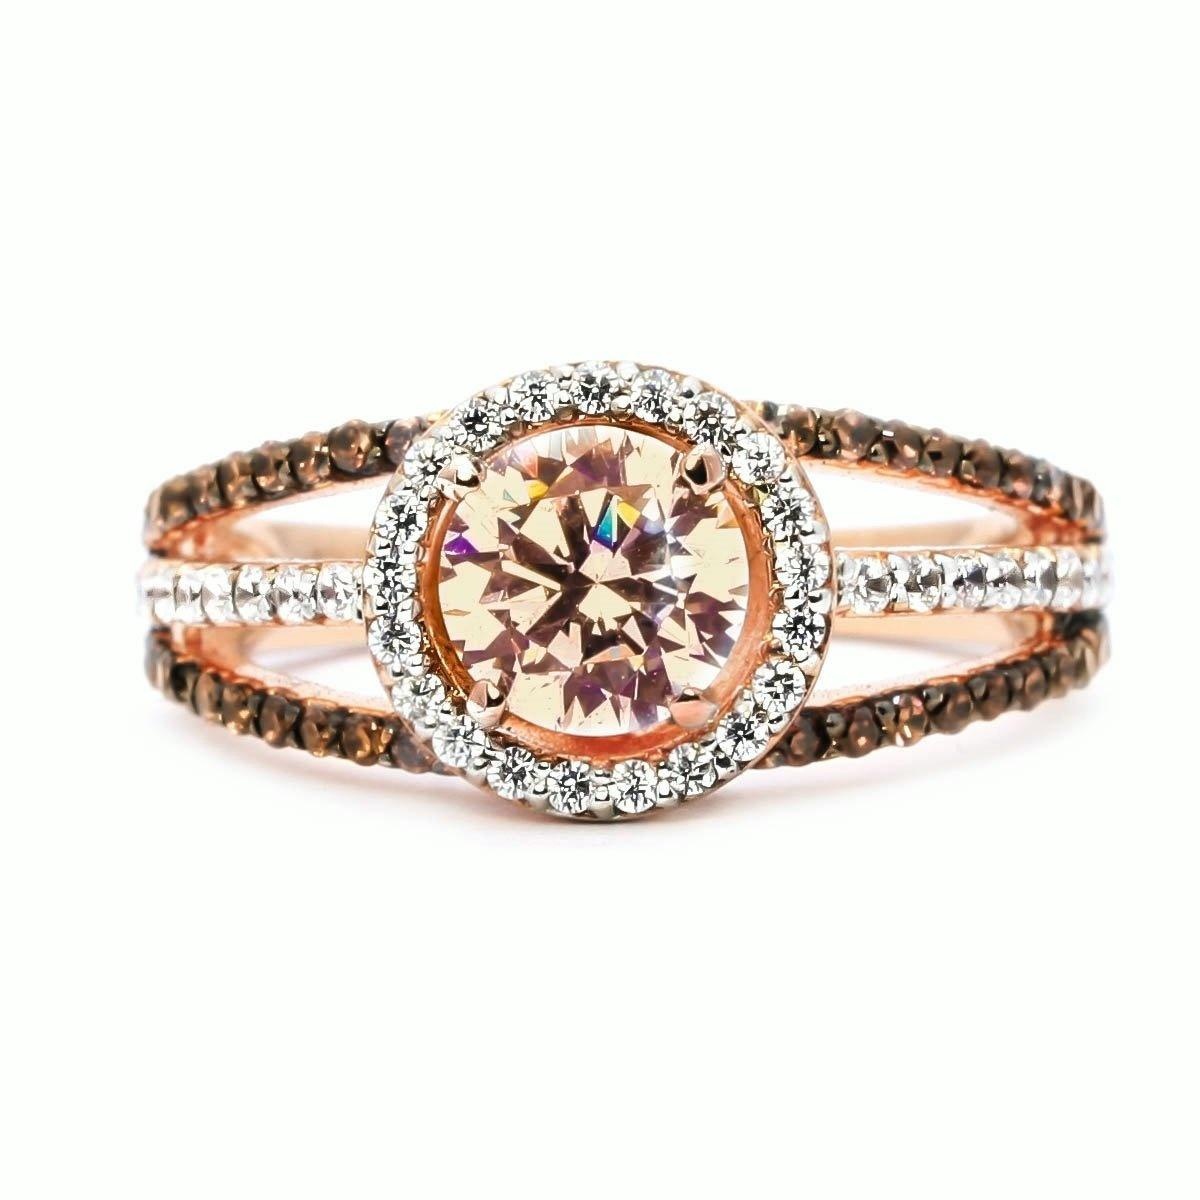 """Luxury Exquisite Women S 925 Sterling Silver Round Garnet & White Sapphire  & Black Topaz Ring 18K Rose Gold Gemstone Diamond Charm Crystal B Intended For Newest Diamond Seven Stone """"x"""" Anniversary Bands In Sterling Silver And Rose Gold (View 8 of 25)"""